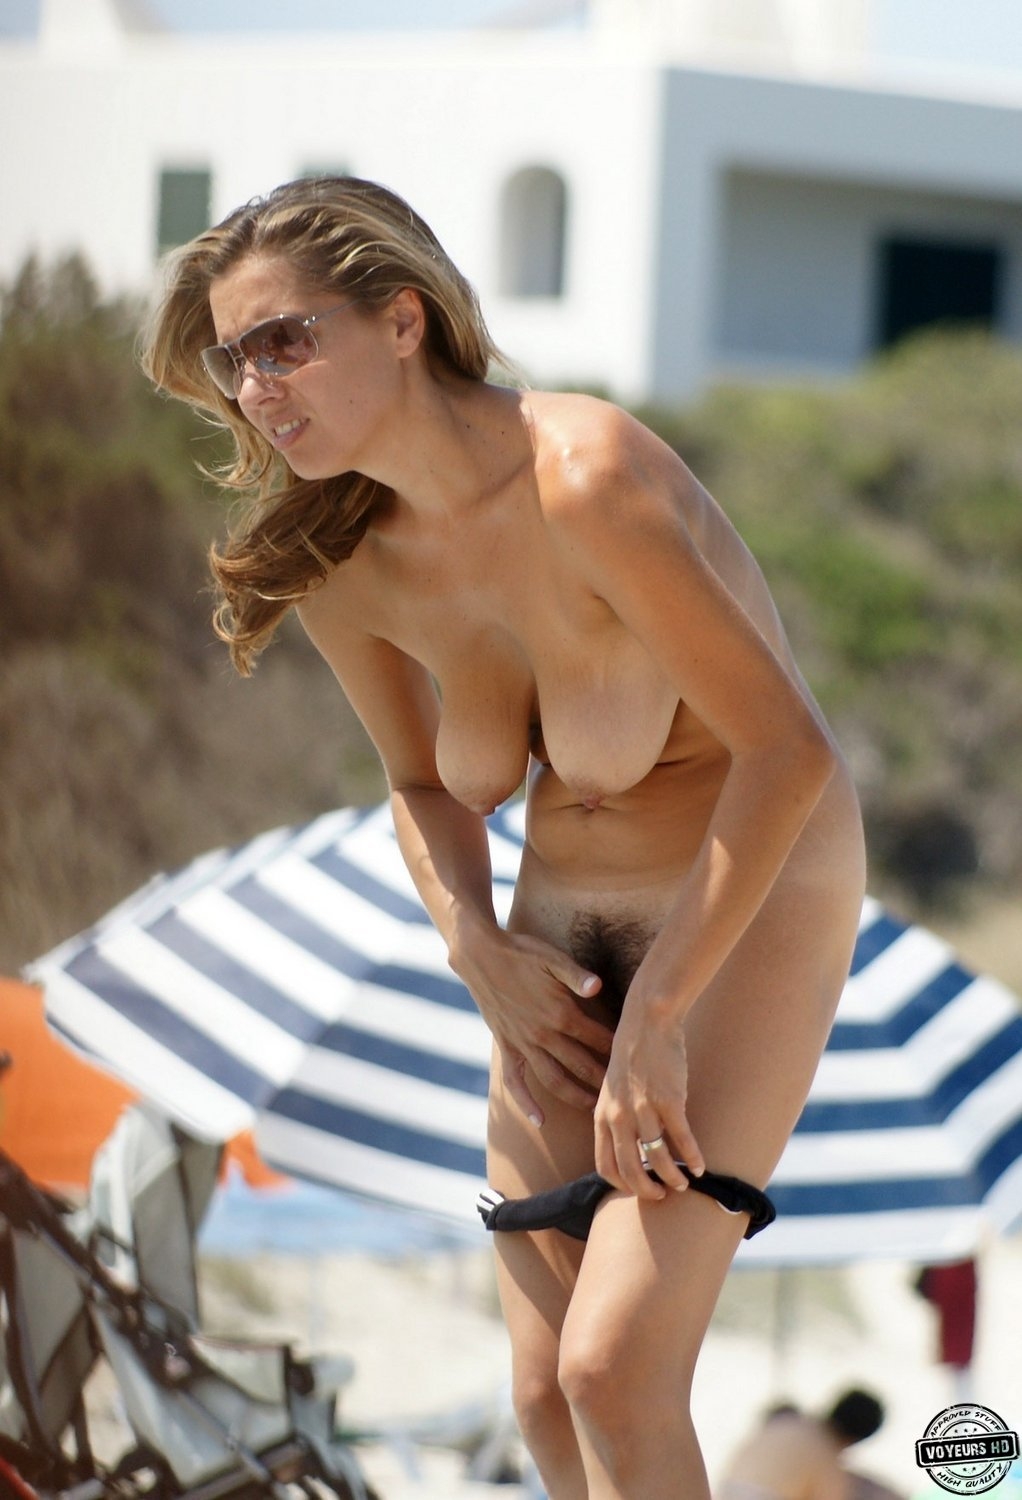 Bikini Bottoms Off - Voyeur Videos-2619